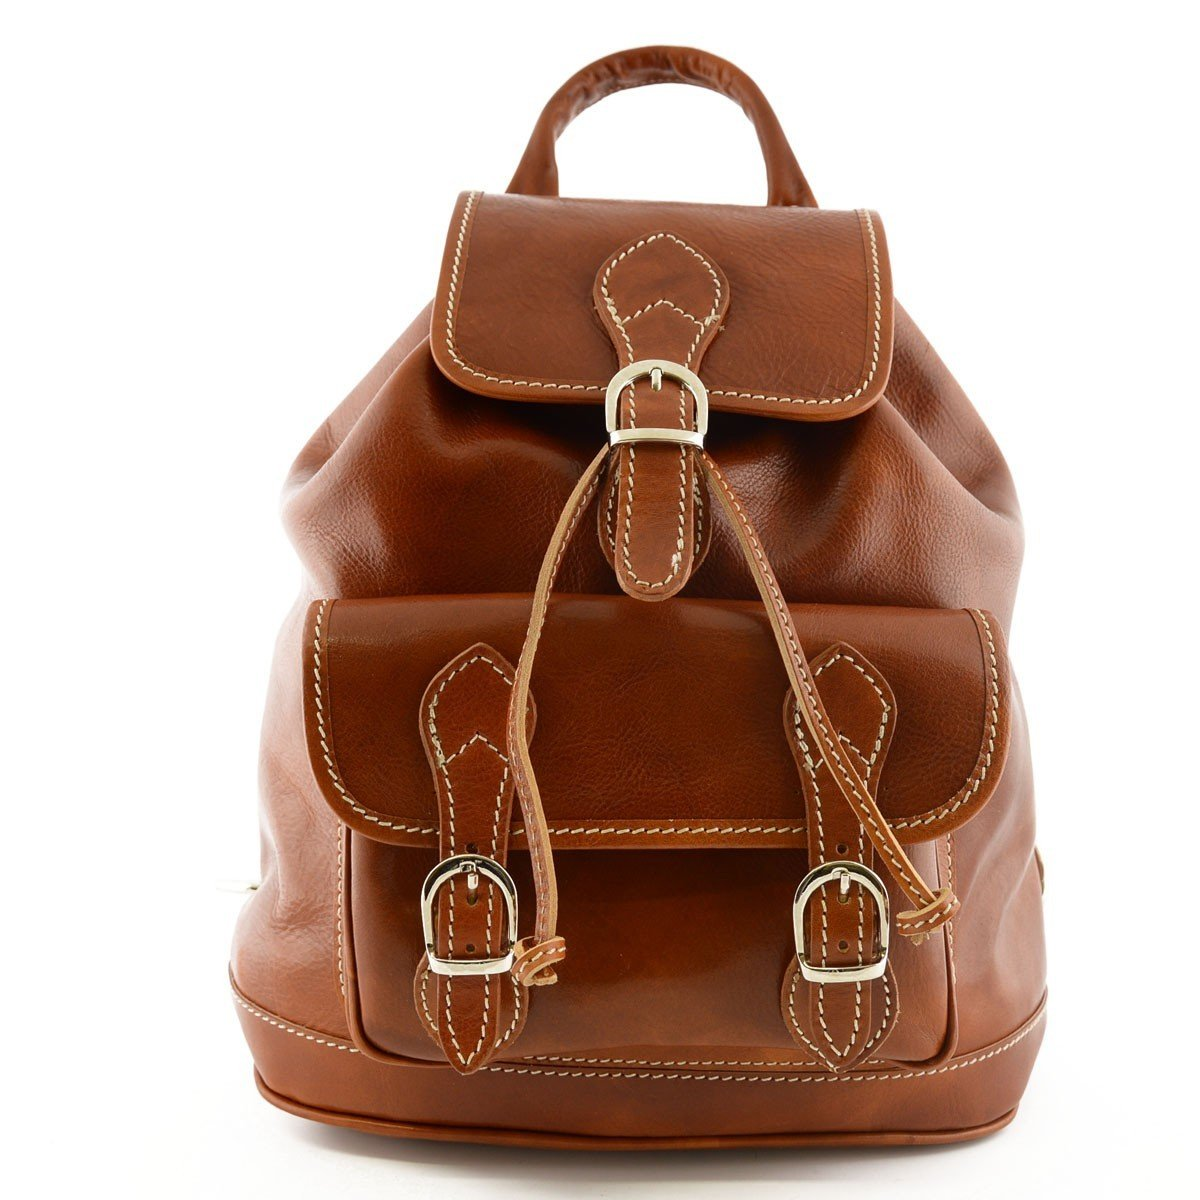 Made In Italy Genuine Leather Backpack, Front Pocket With Buckles Color Cognac - Backpack   B016295ITA